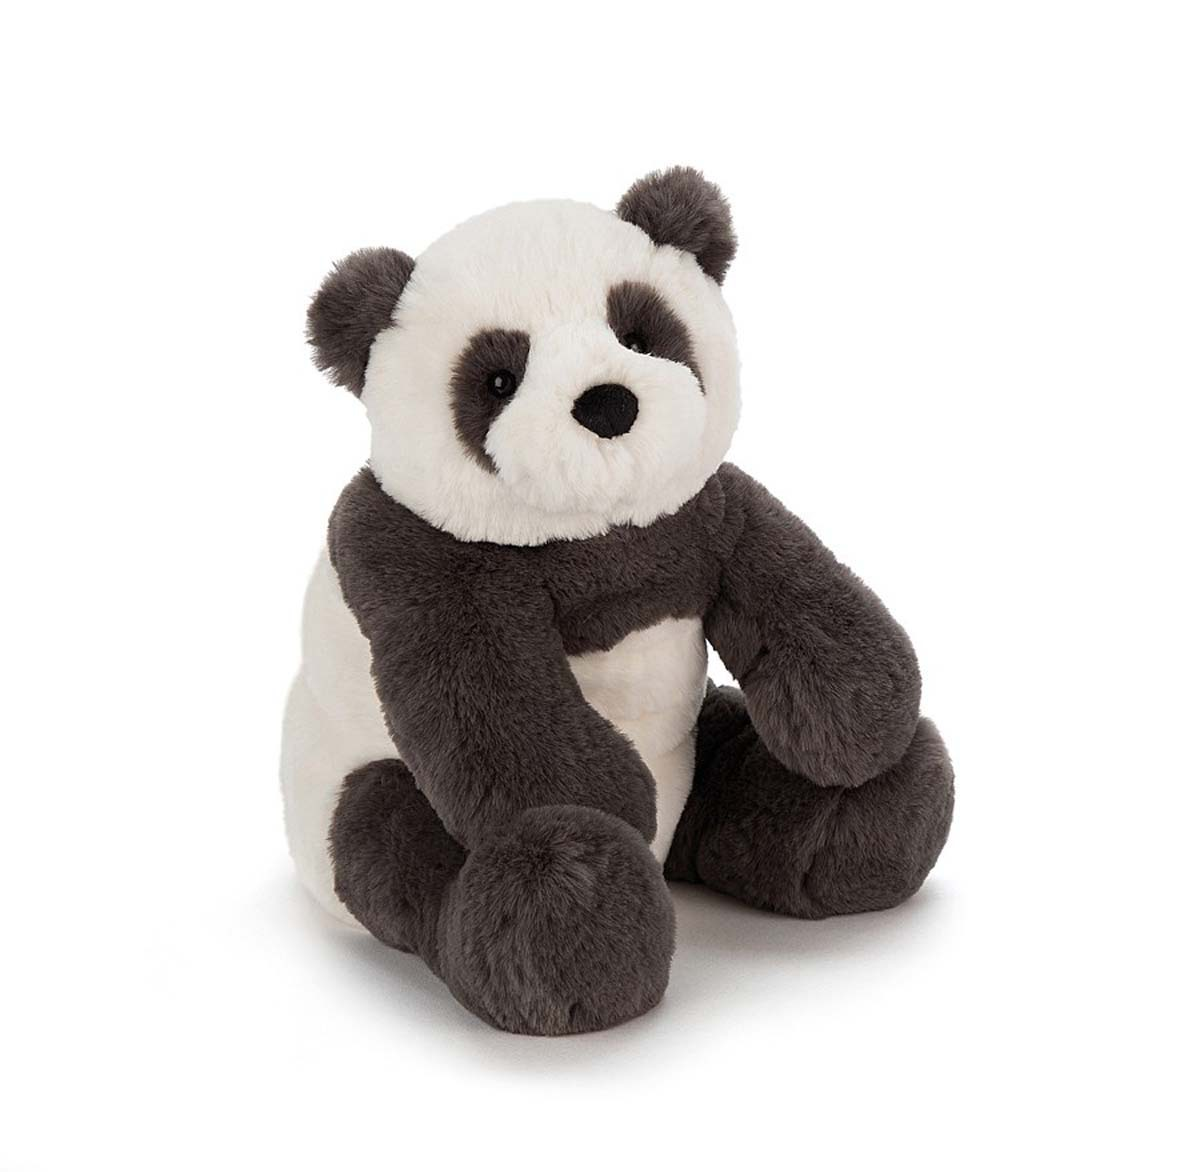 Peluche Harry Panda Cub - Medium Harry Panda Cub - Medium